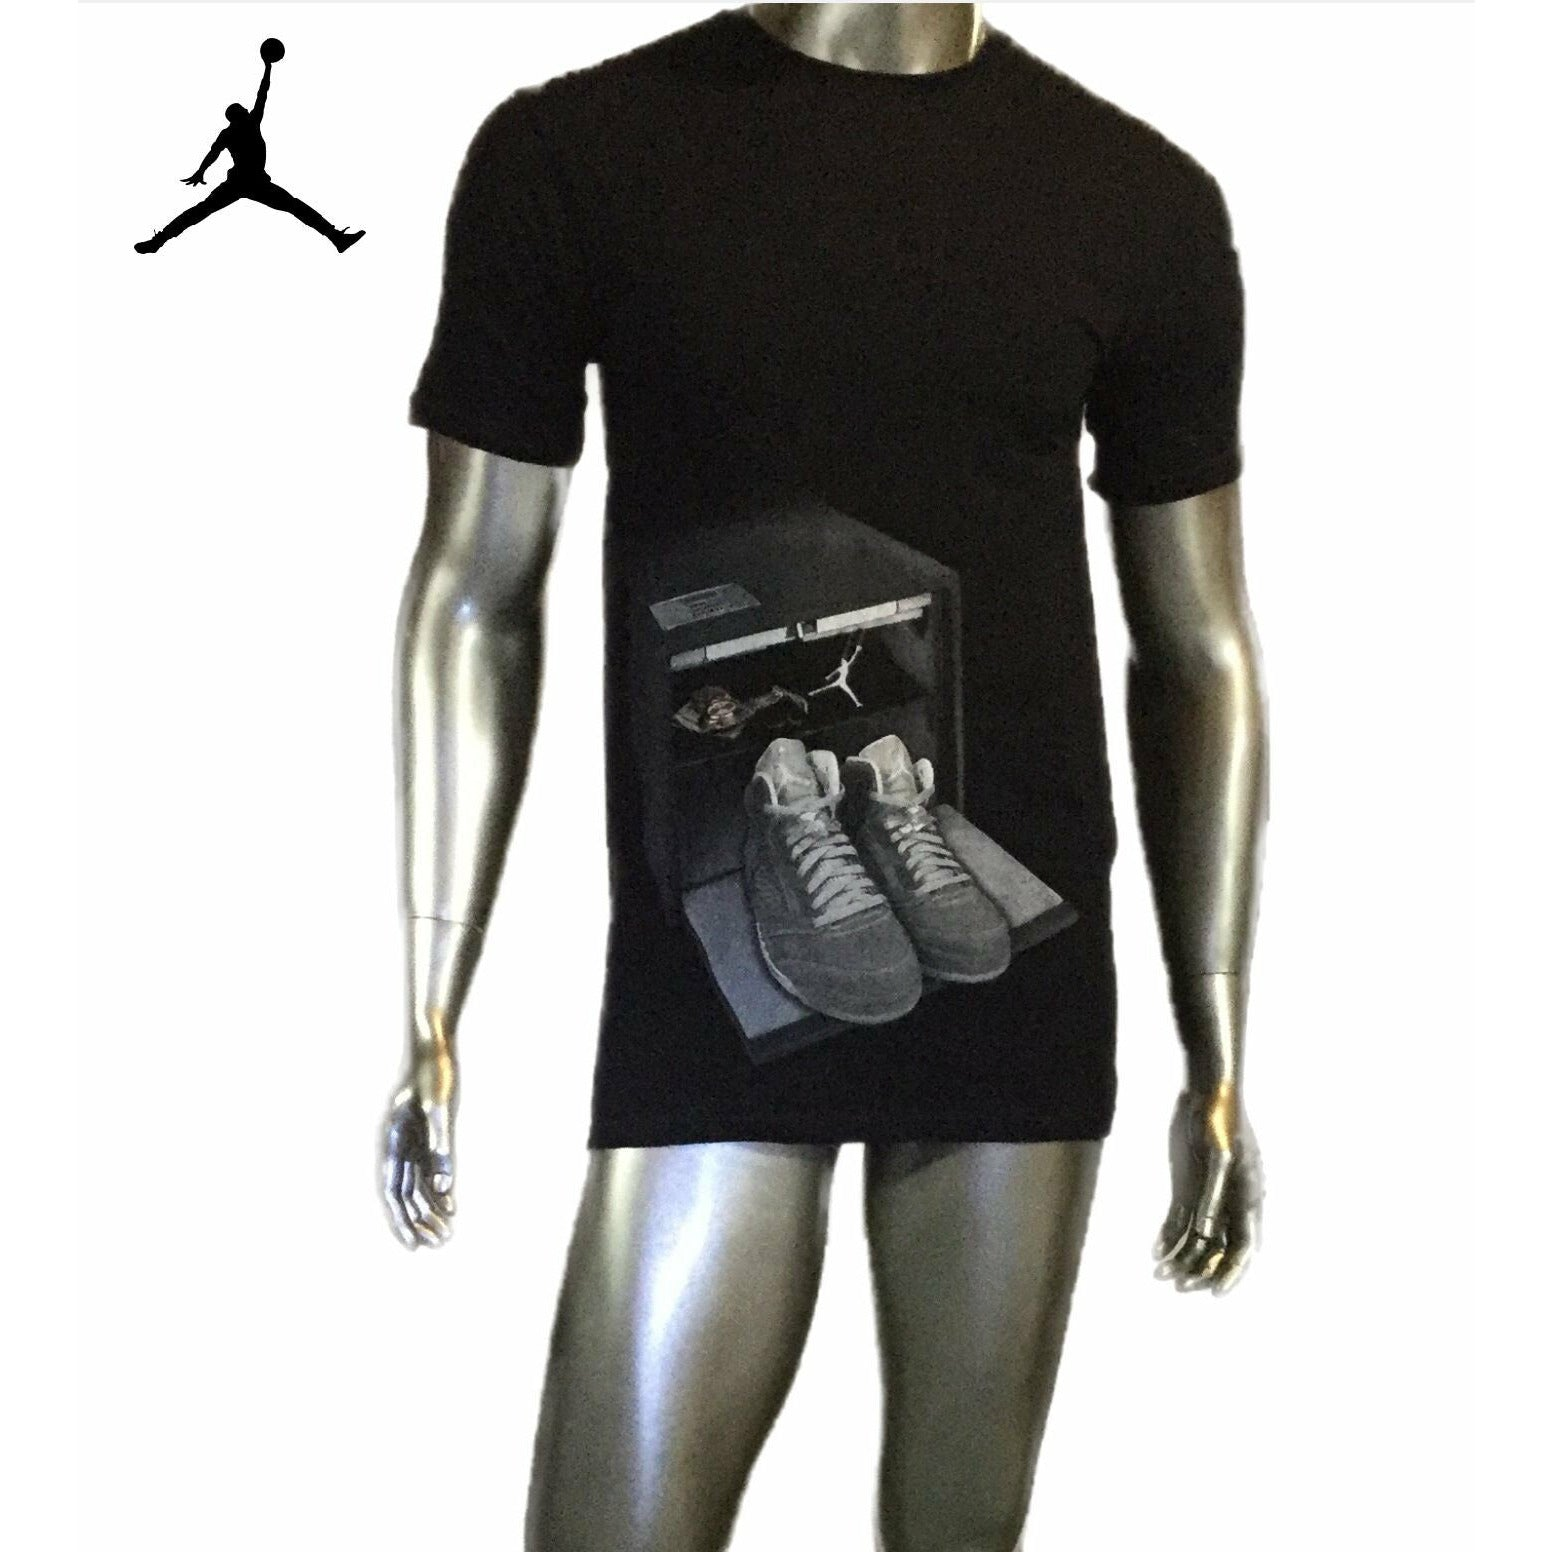 Vintage Air Jordan Tee Shirt, Graphic Sneakers, Size Medium